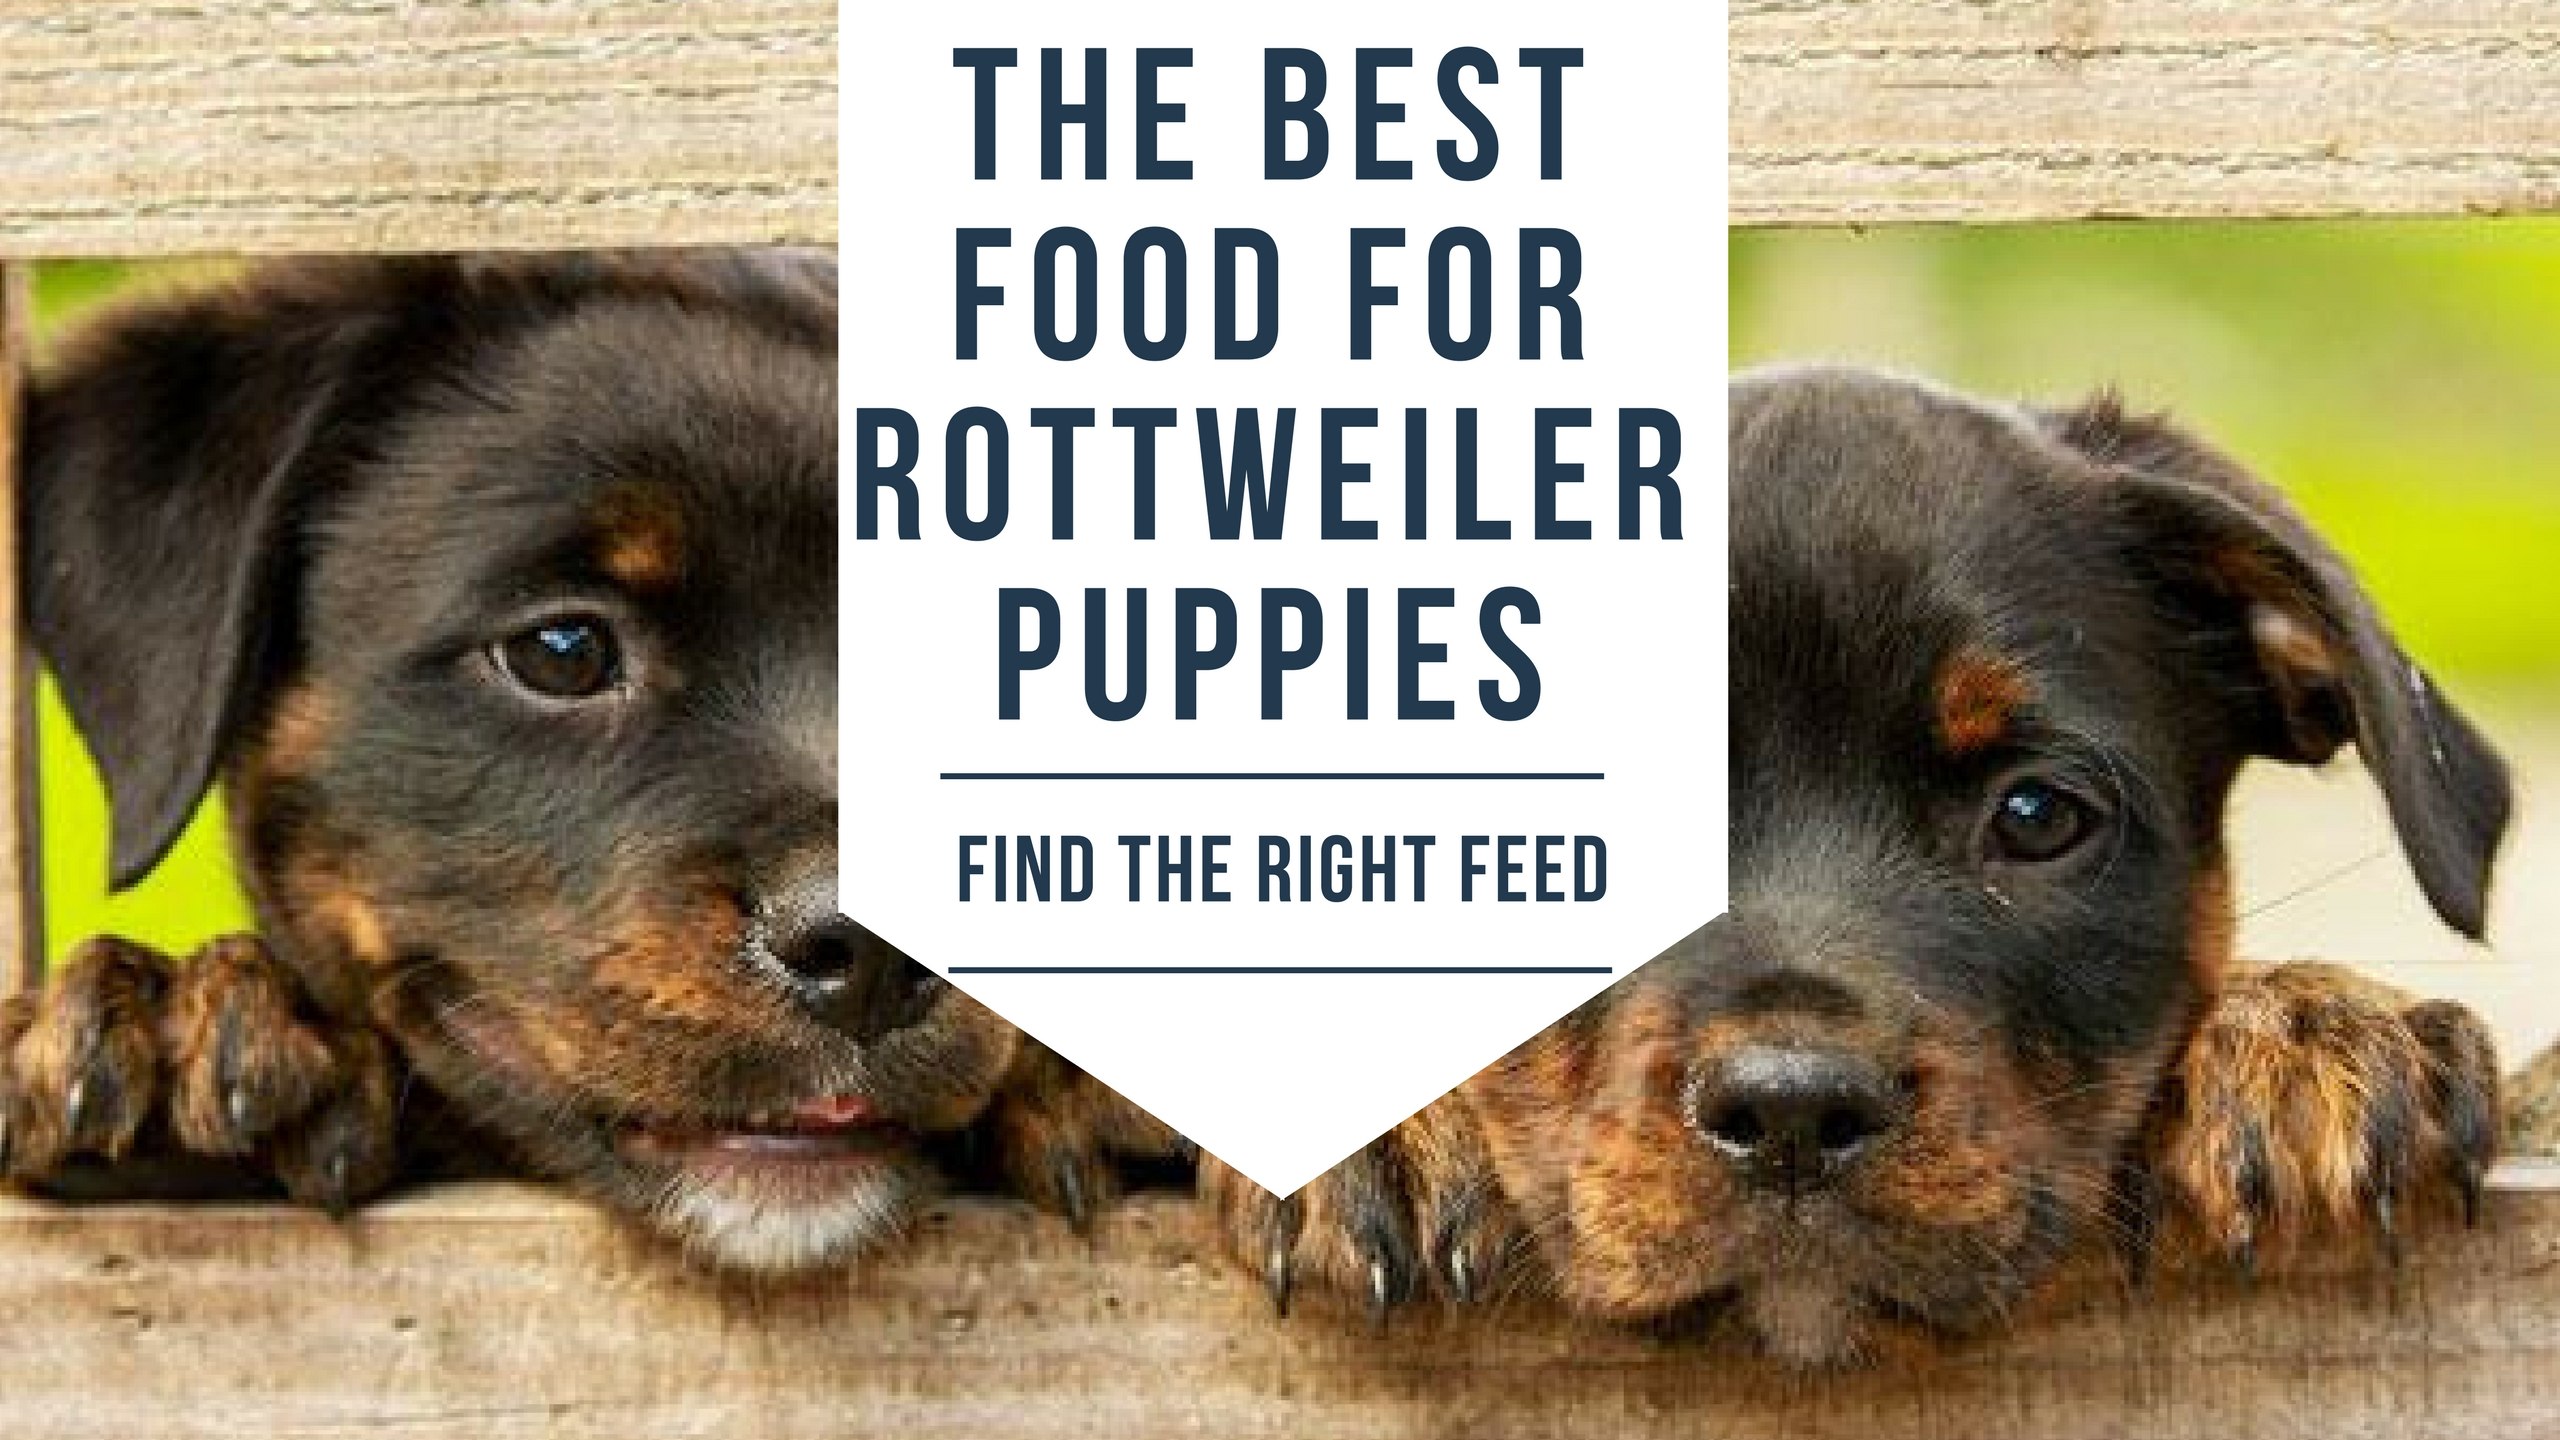 The Best Food For Rottweiler Puppies Find The Right Feed